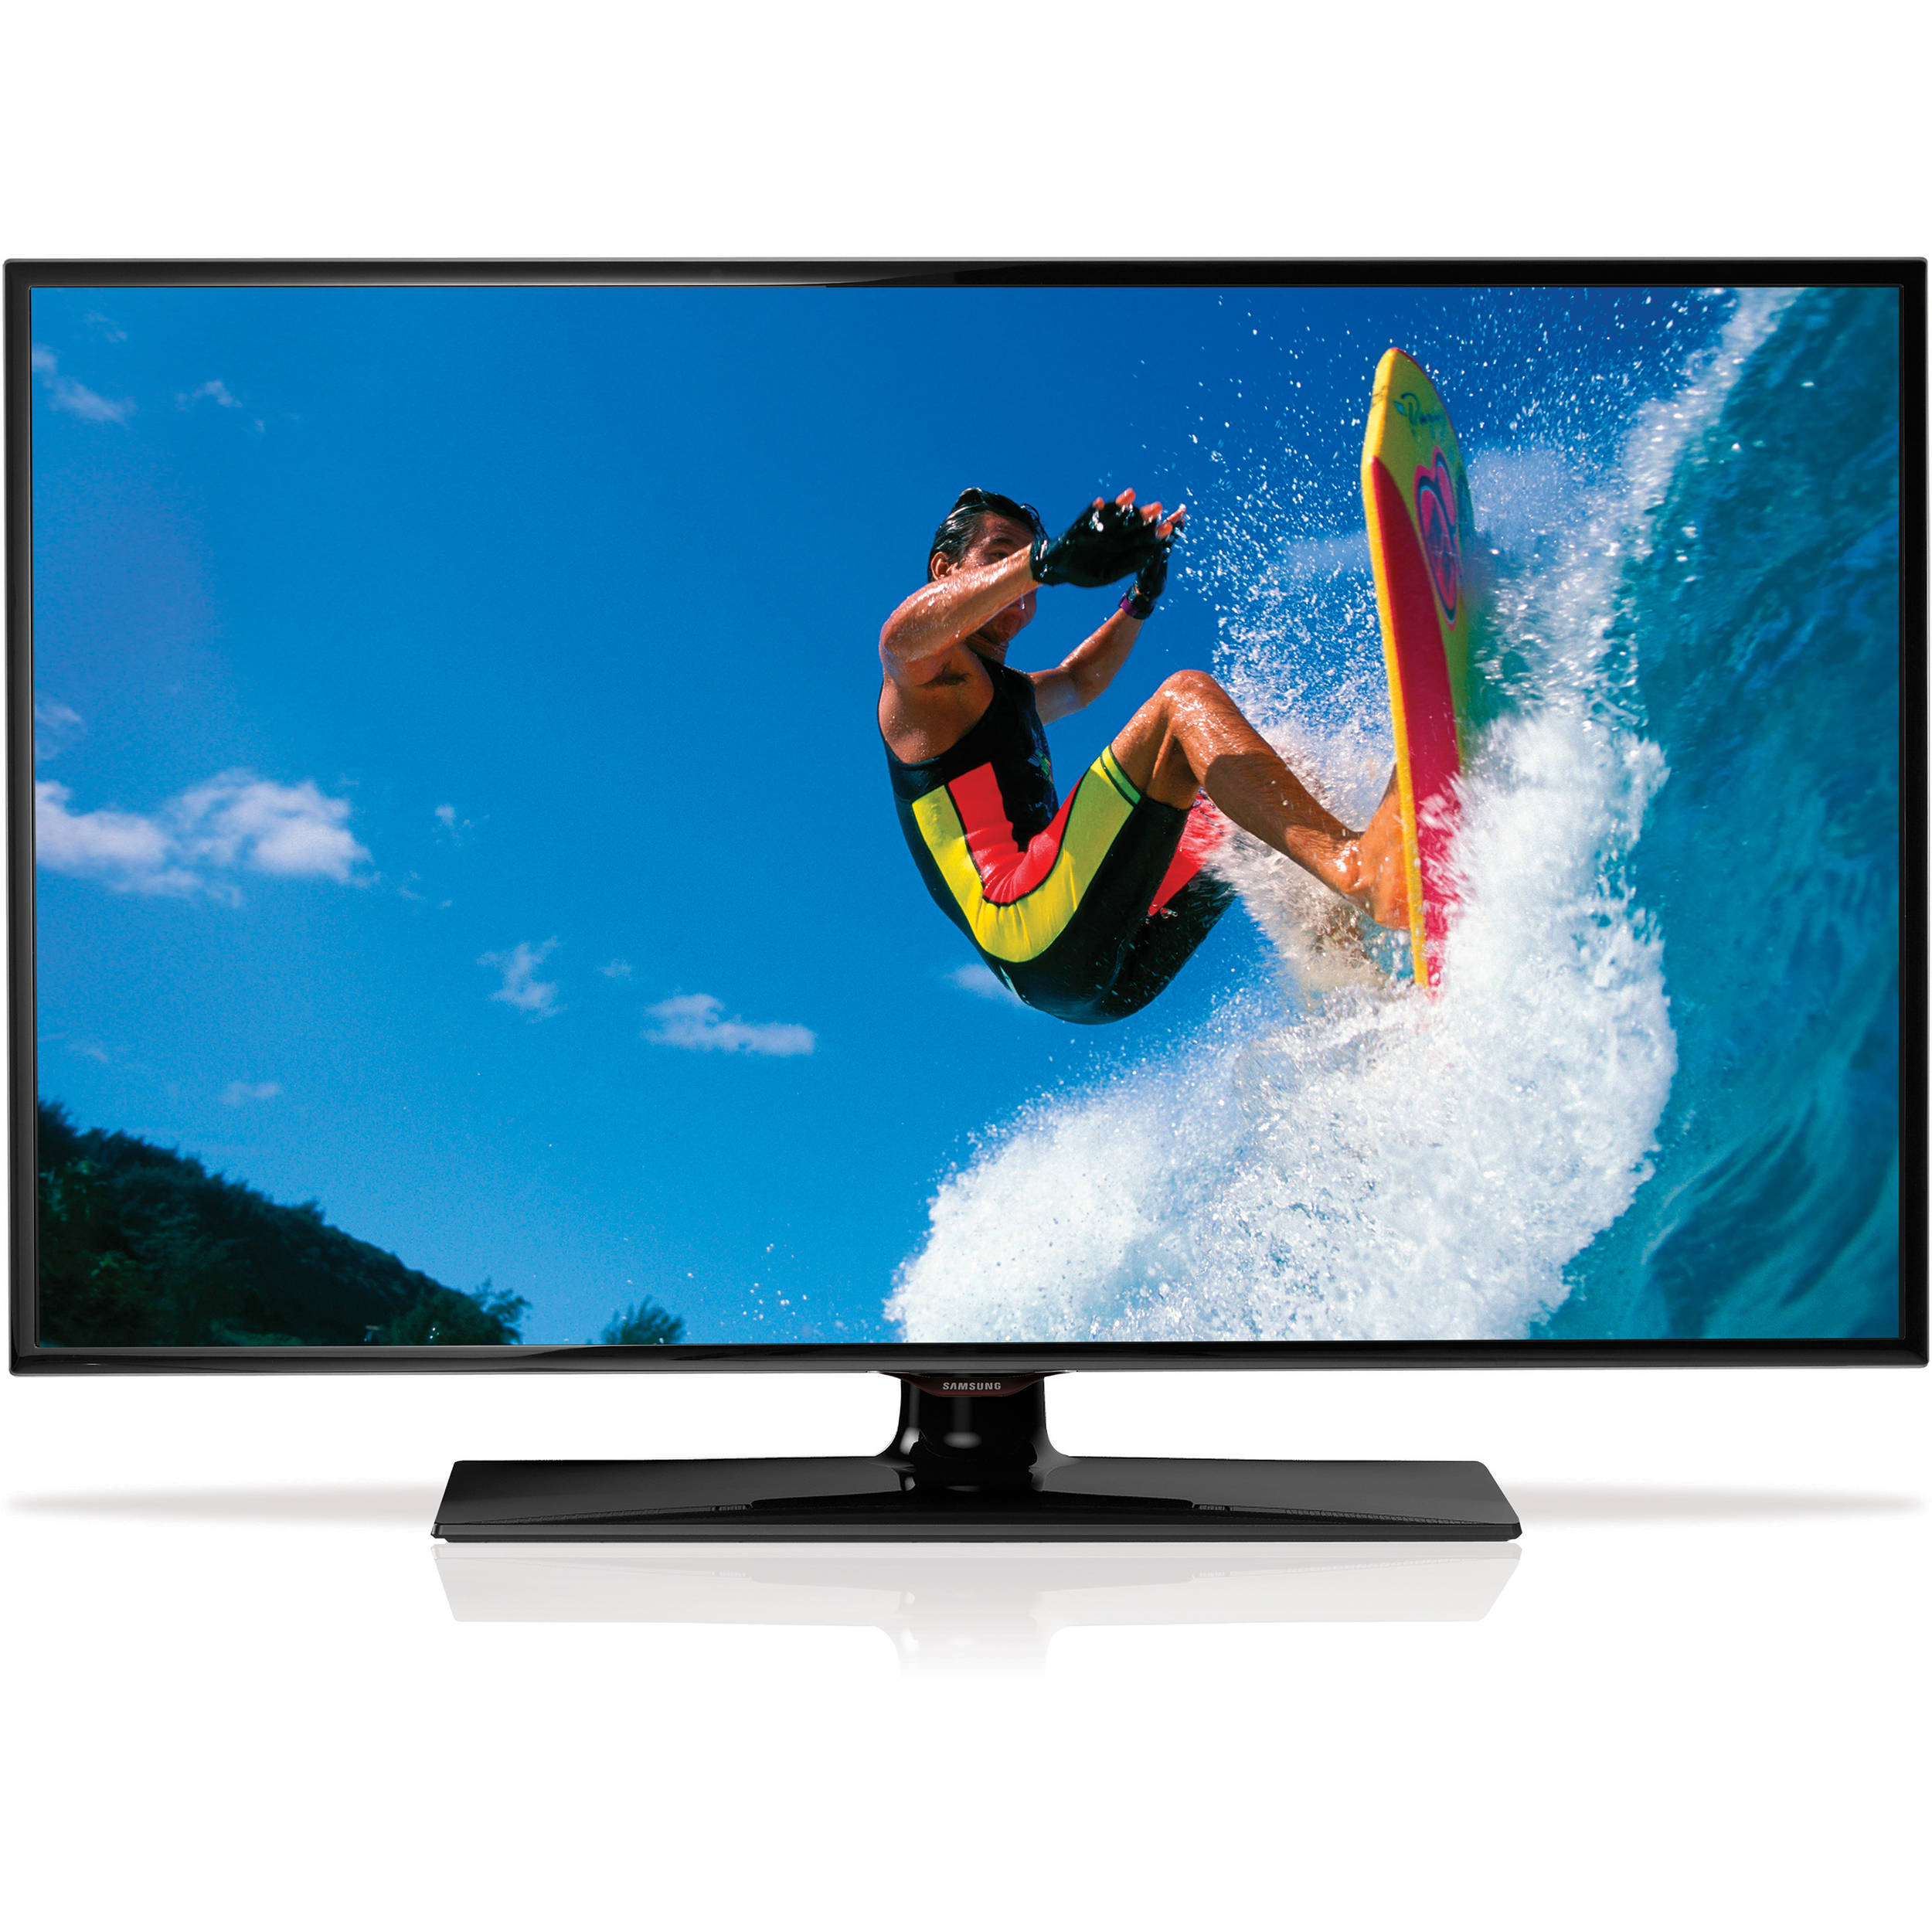 1176072 Smart Tv Samsumg   Audio Out Desconhecida furthermore Lg Uf8500 Series Smart 65 Led likewise What Is The Best Way To Connect A Macbook Pro To A Samsung Tv Set also 51339802 likewise 2168. on samsung tv digital audio out